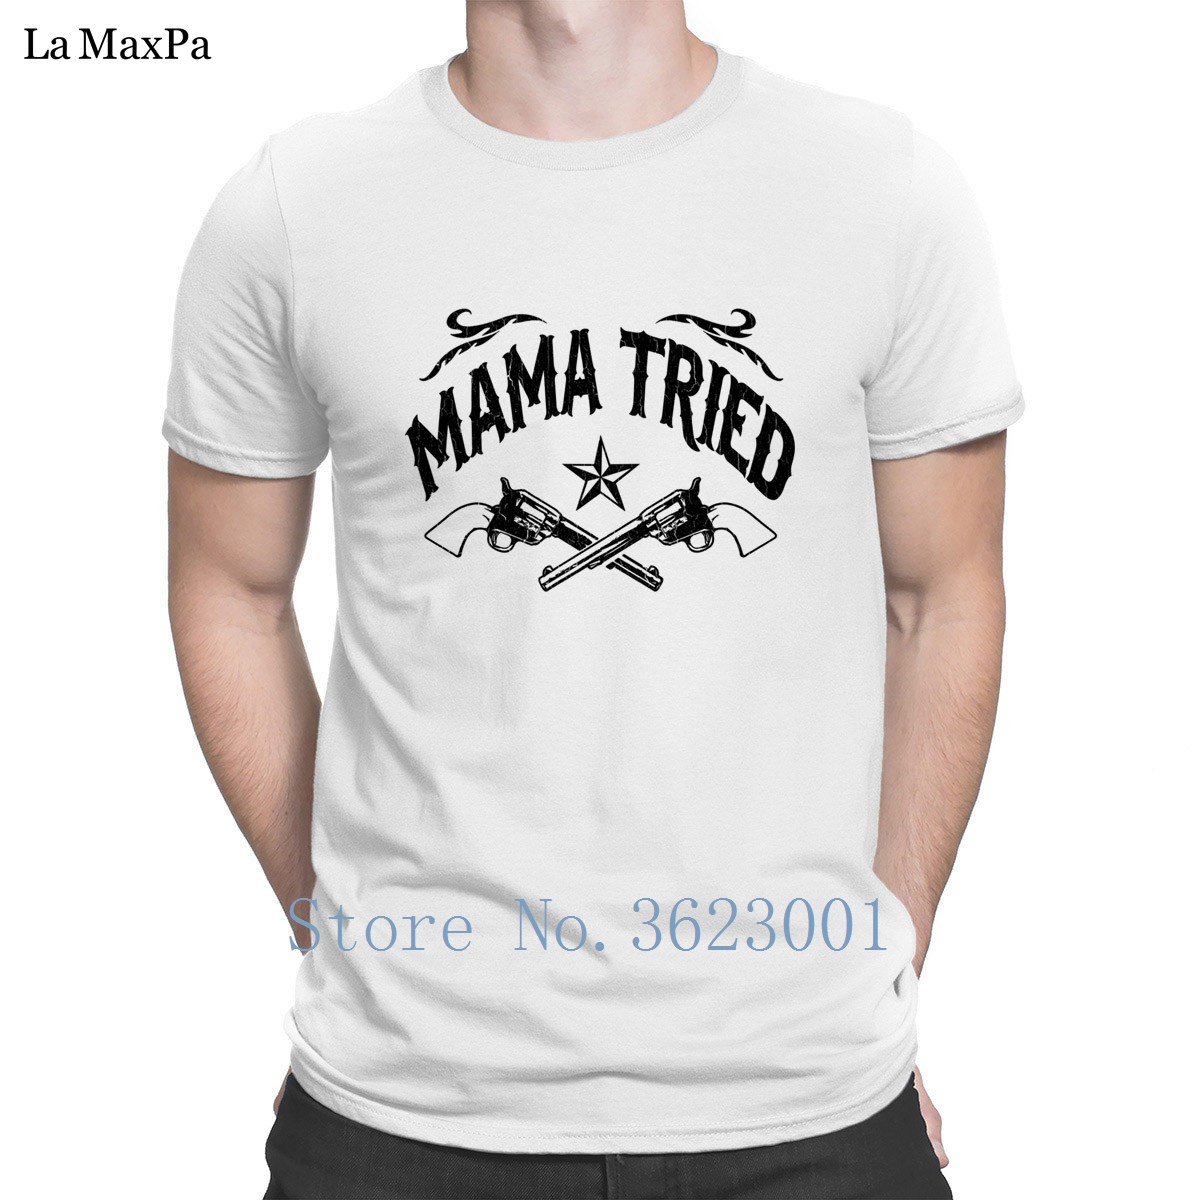 Create Big Sizes T Shirt For Men Mama Tried Vintage Distressed Look T-Shirt Stylish New Tshirt Vintage Hot Sale Basic Solid